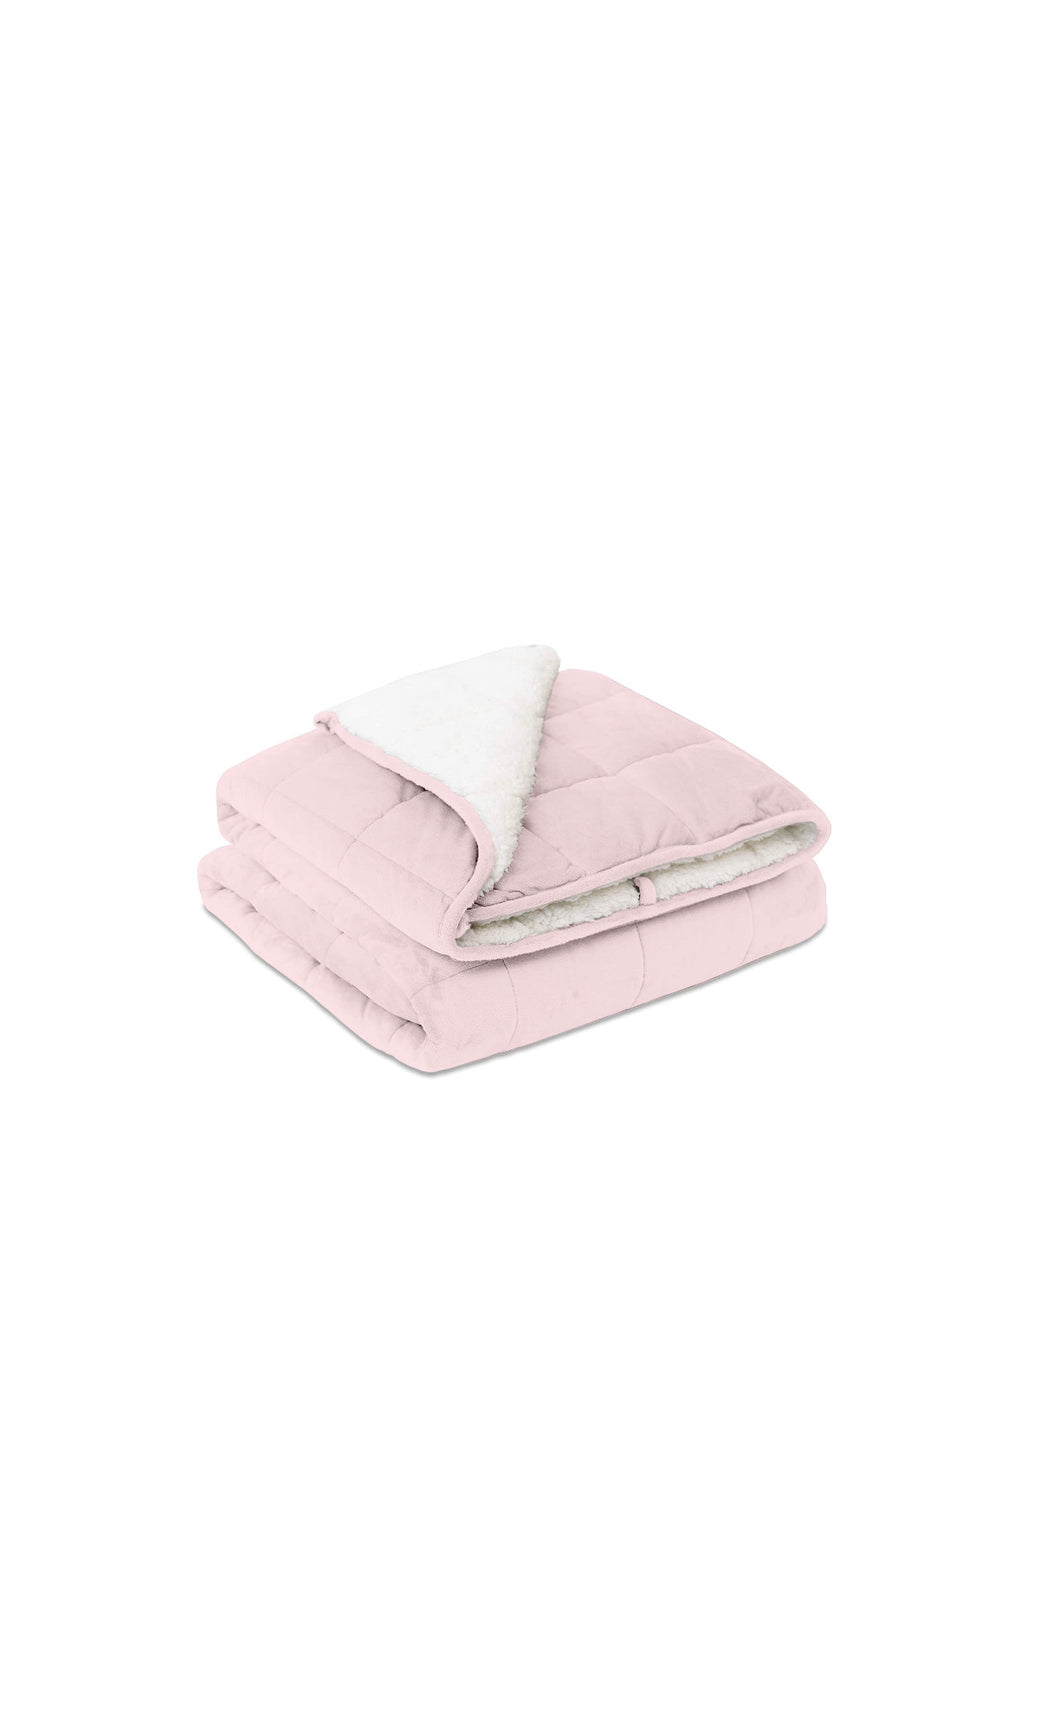 "Pink & White Weighted Blanket (50"" x 60"")"